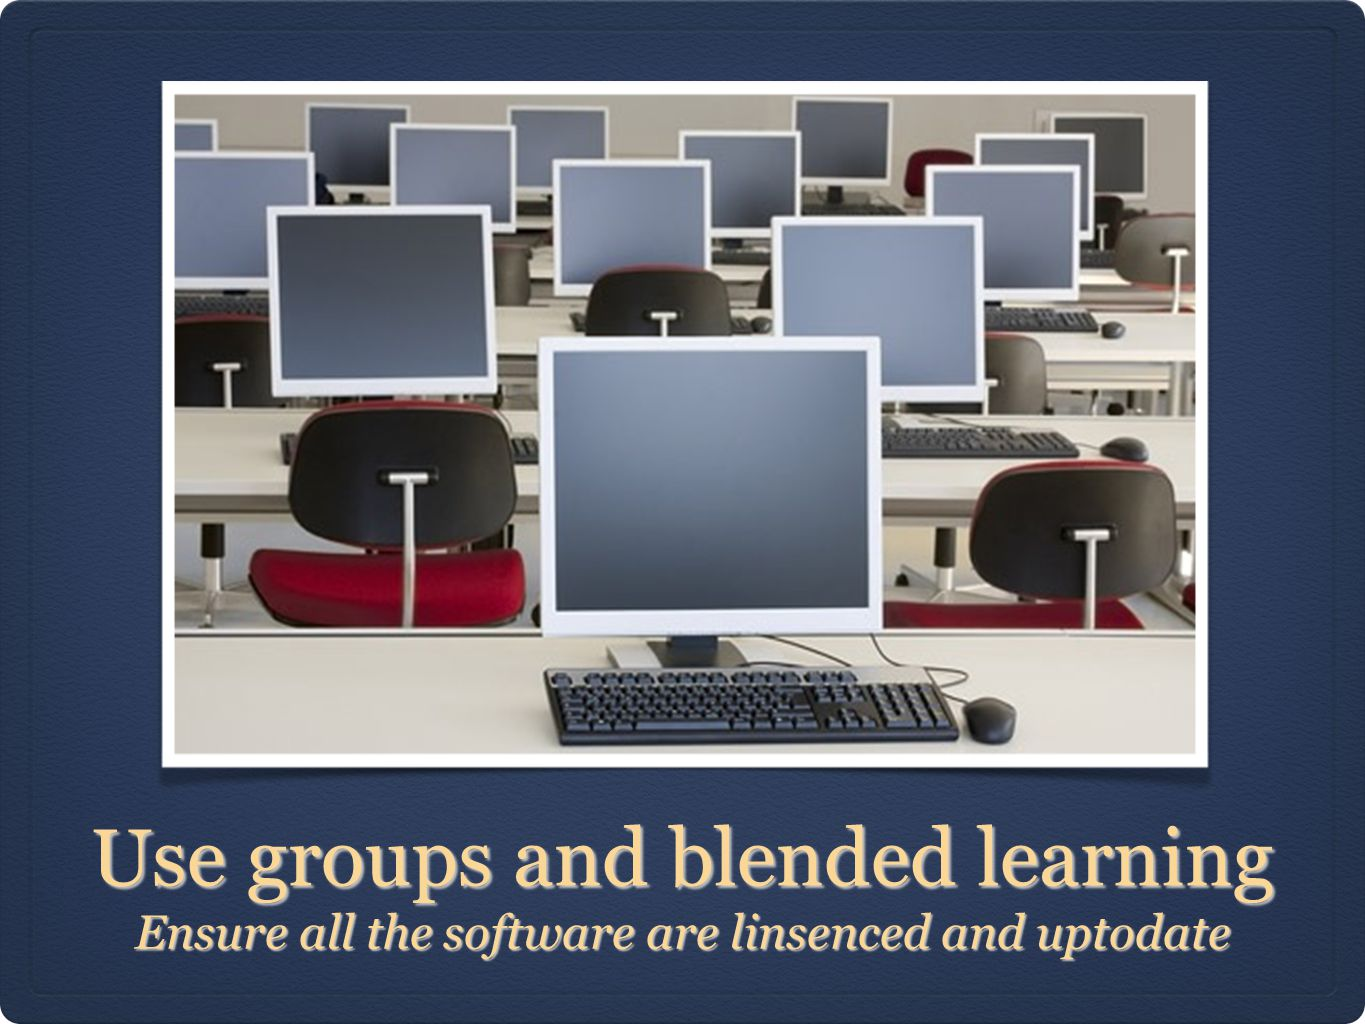 Use groups and blended learning Ensure all the software are linsenced and uptodate